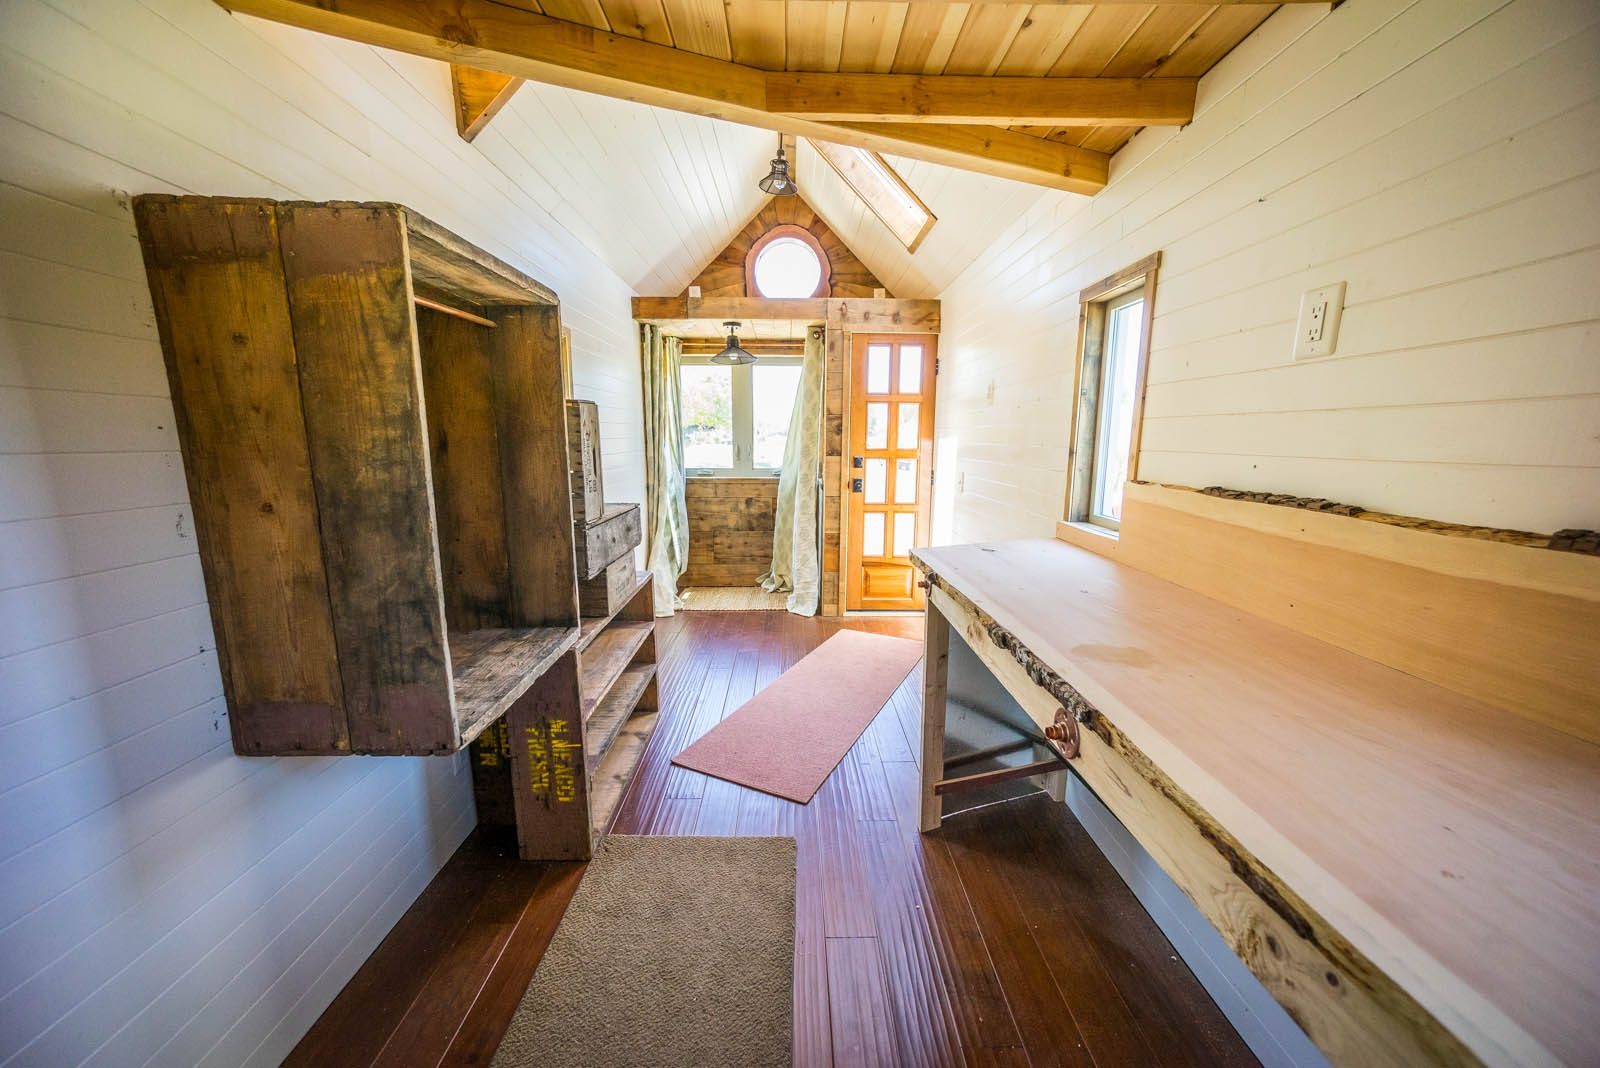 Tiny house giant journey interior tiny house giant journey - Inside house ...